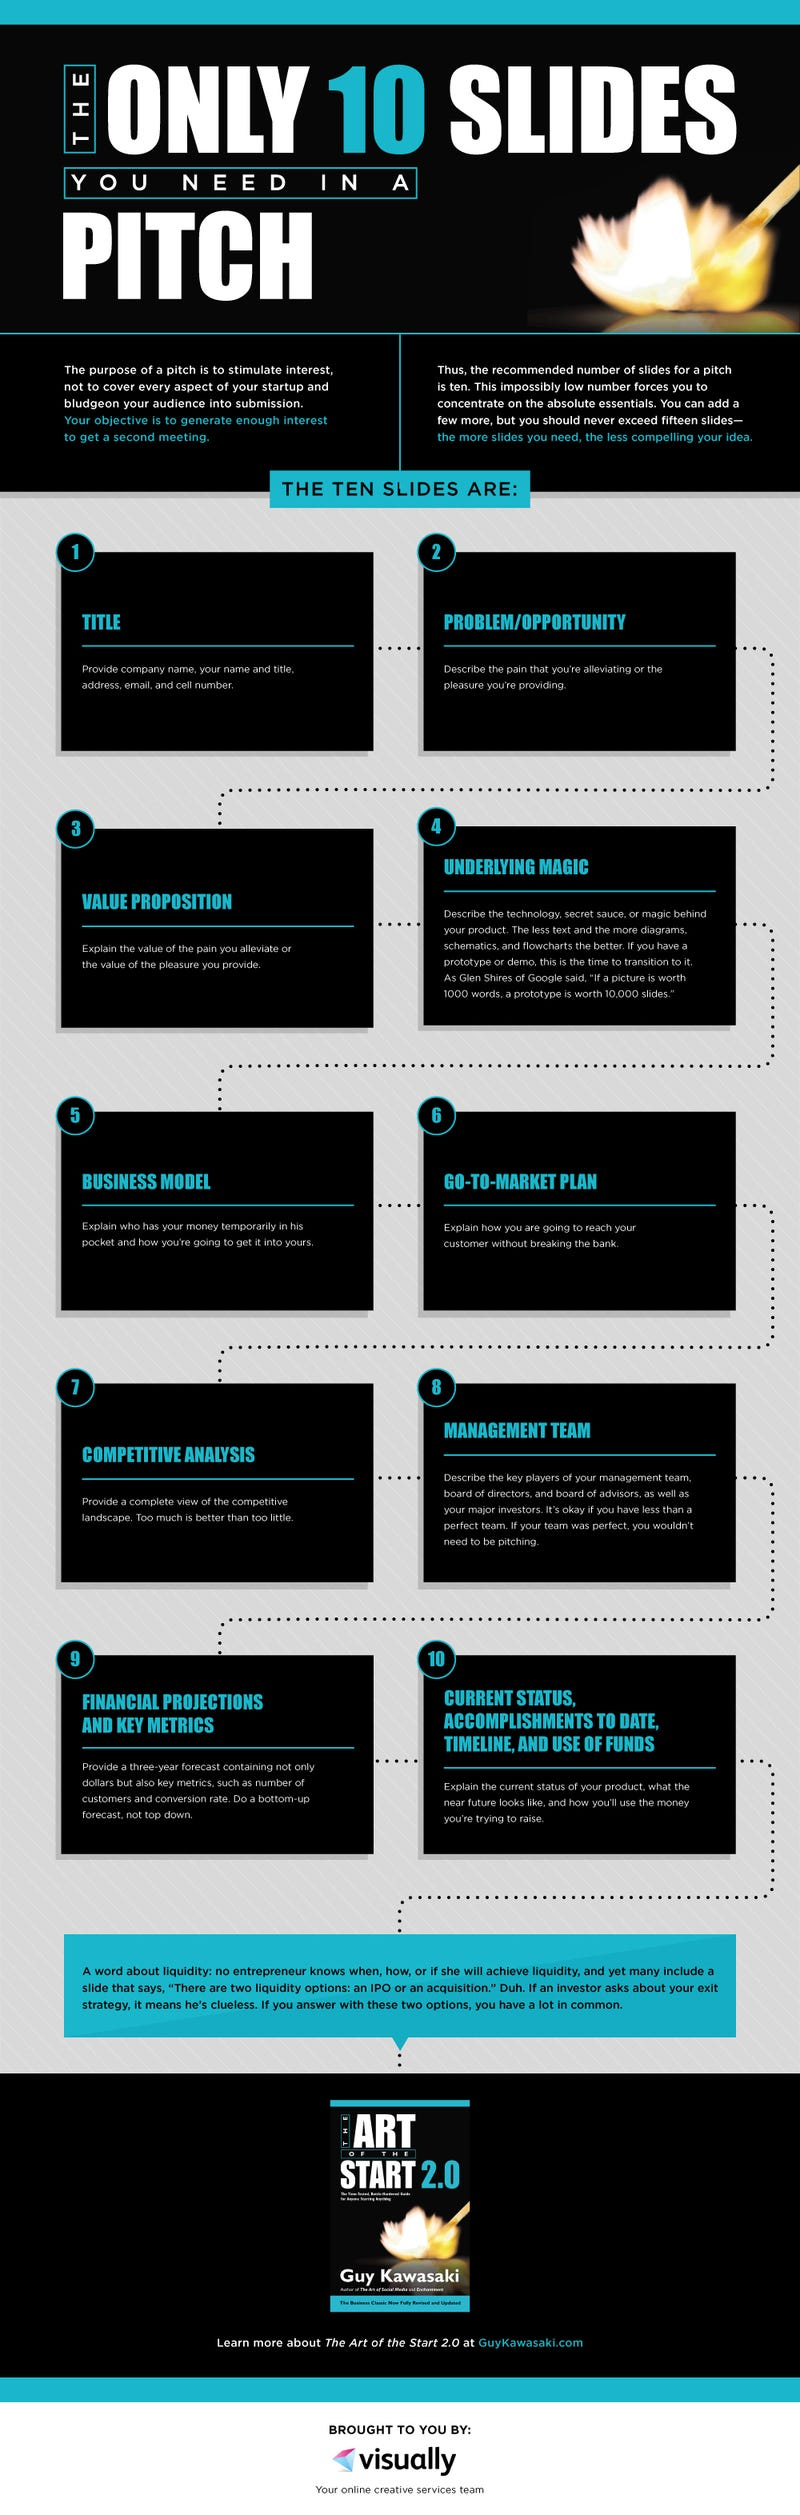 The 10 Slides You Need to Pitch Your Business Idea